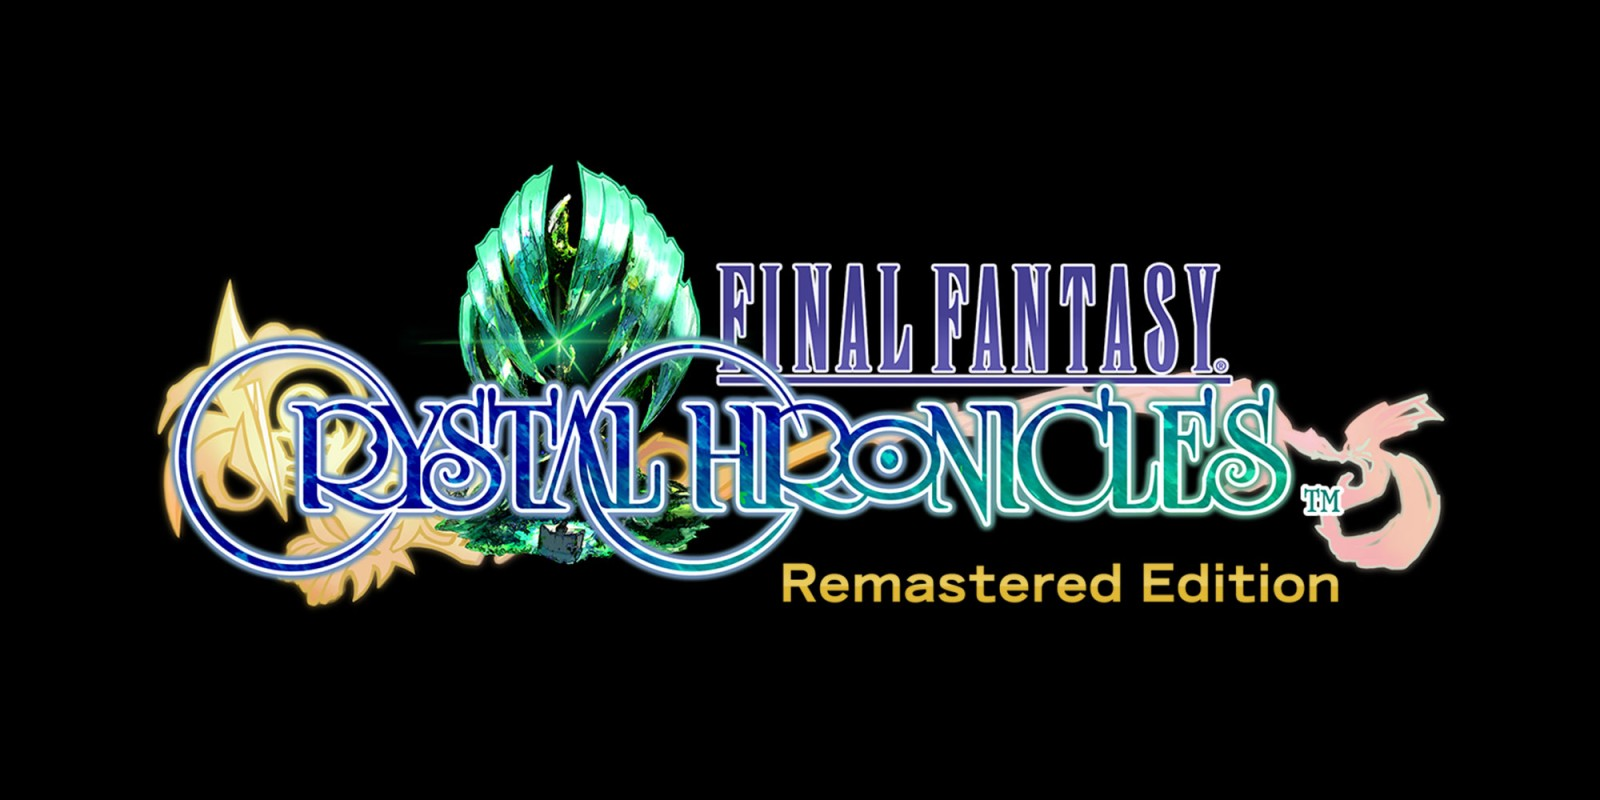 E3 Announcement: Final Fantasy: Crystal Chronicles Remastered releases this Winter